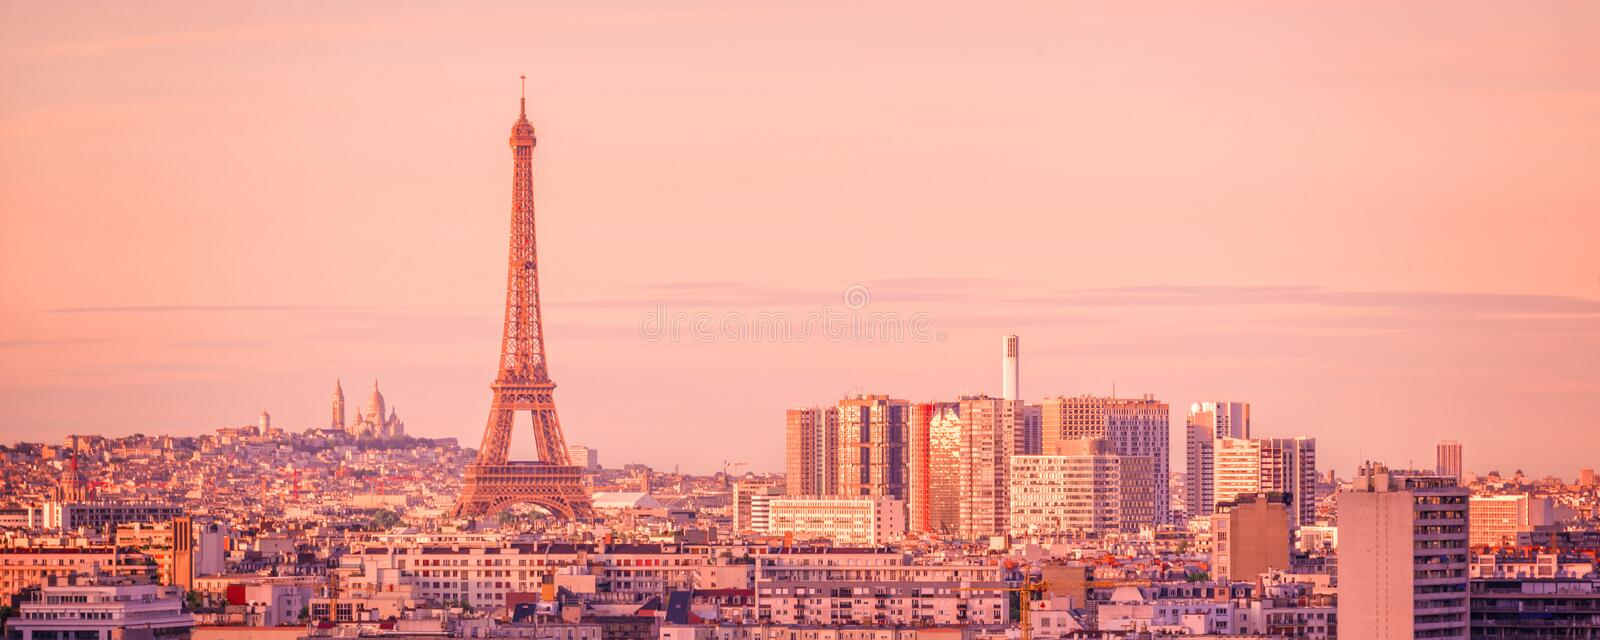 Download Panoramic Skyline Of Paris With The Eiffel Tower At Sunset, Montmartre In The Background, France Stock Photo - Image of hour, horizontal: 98495410